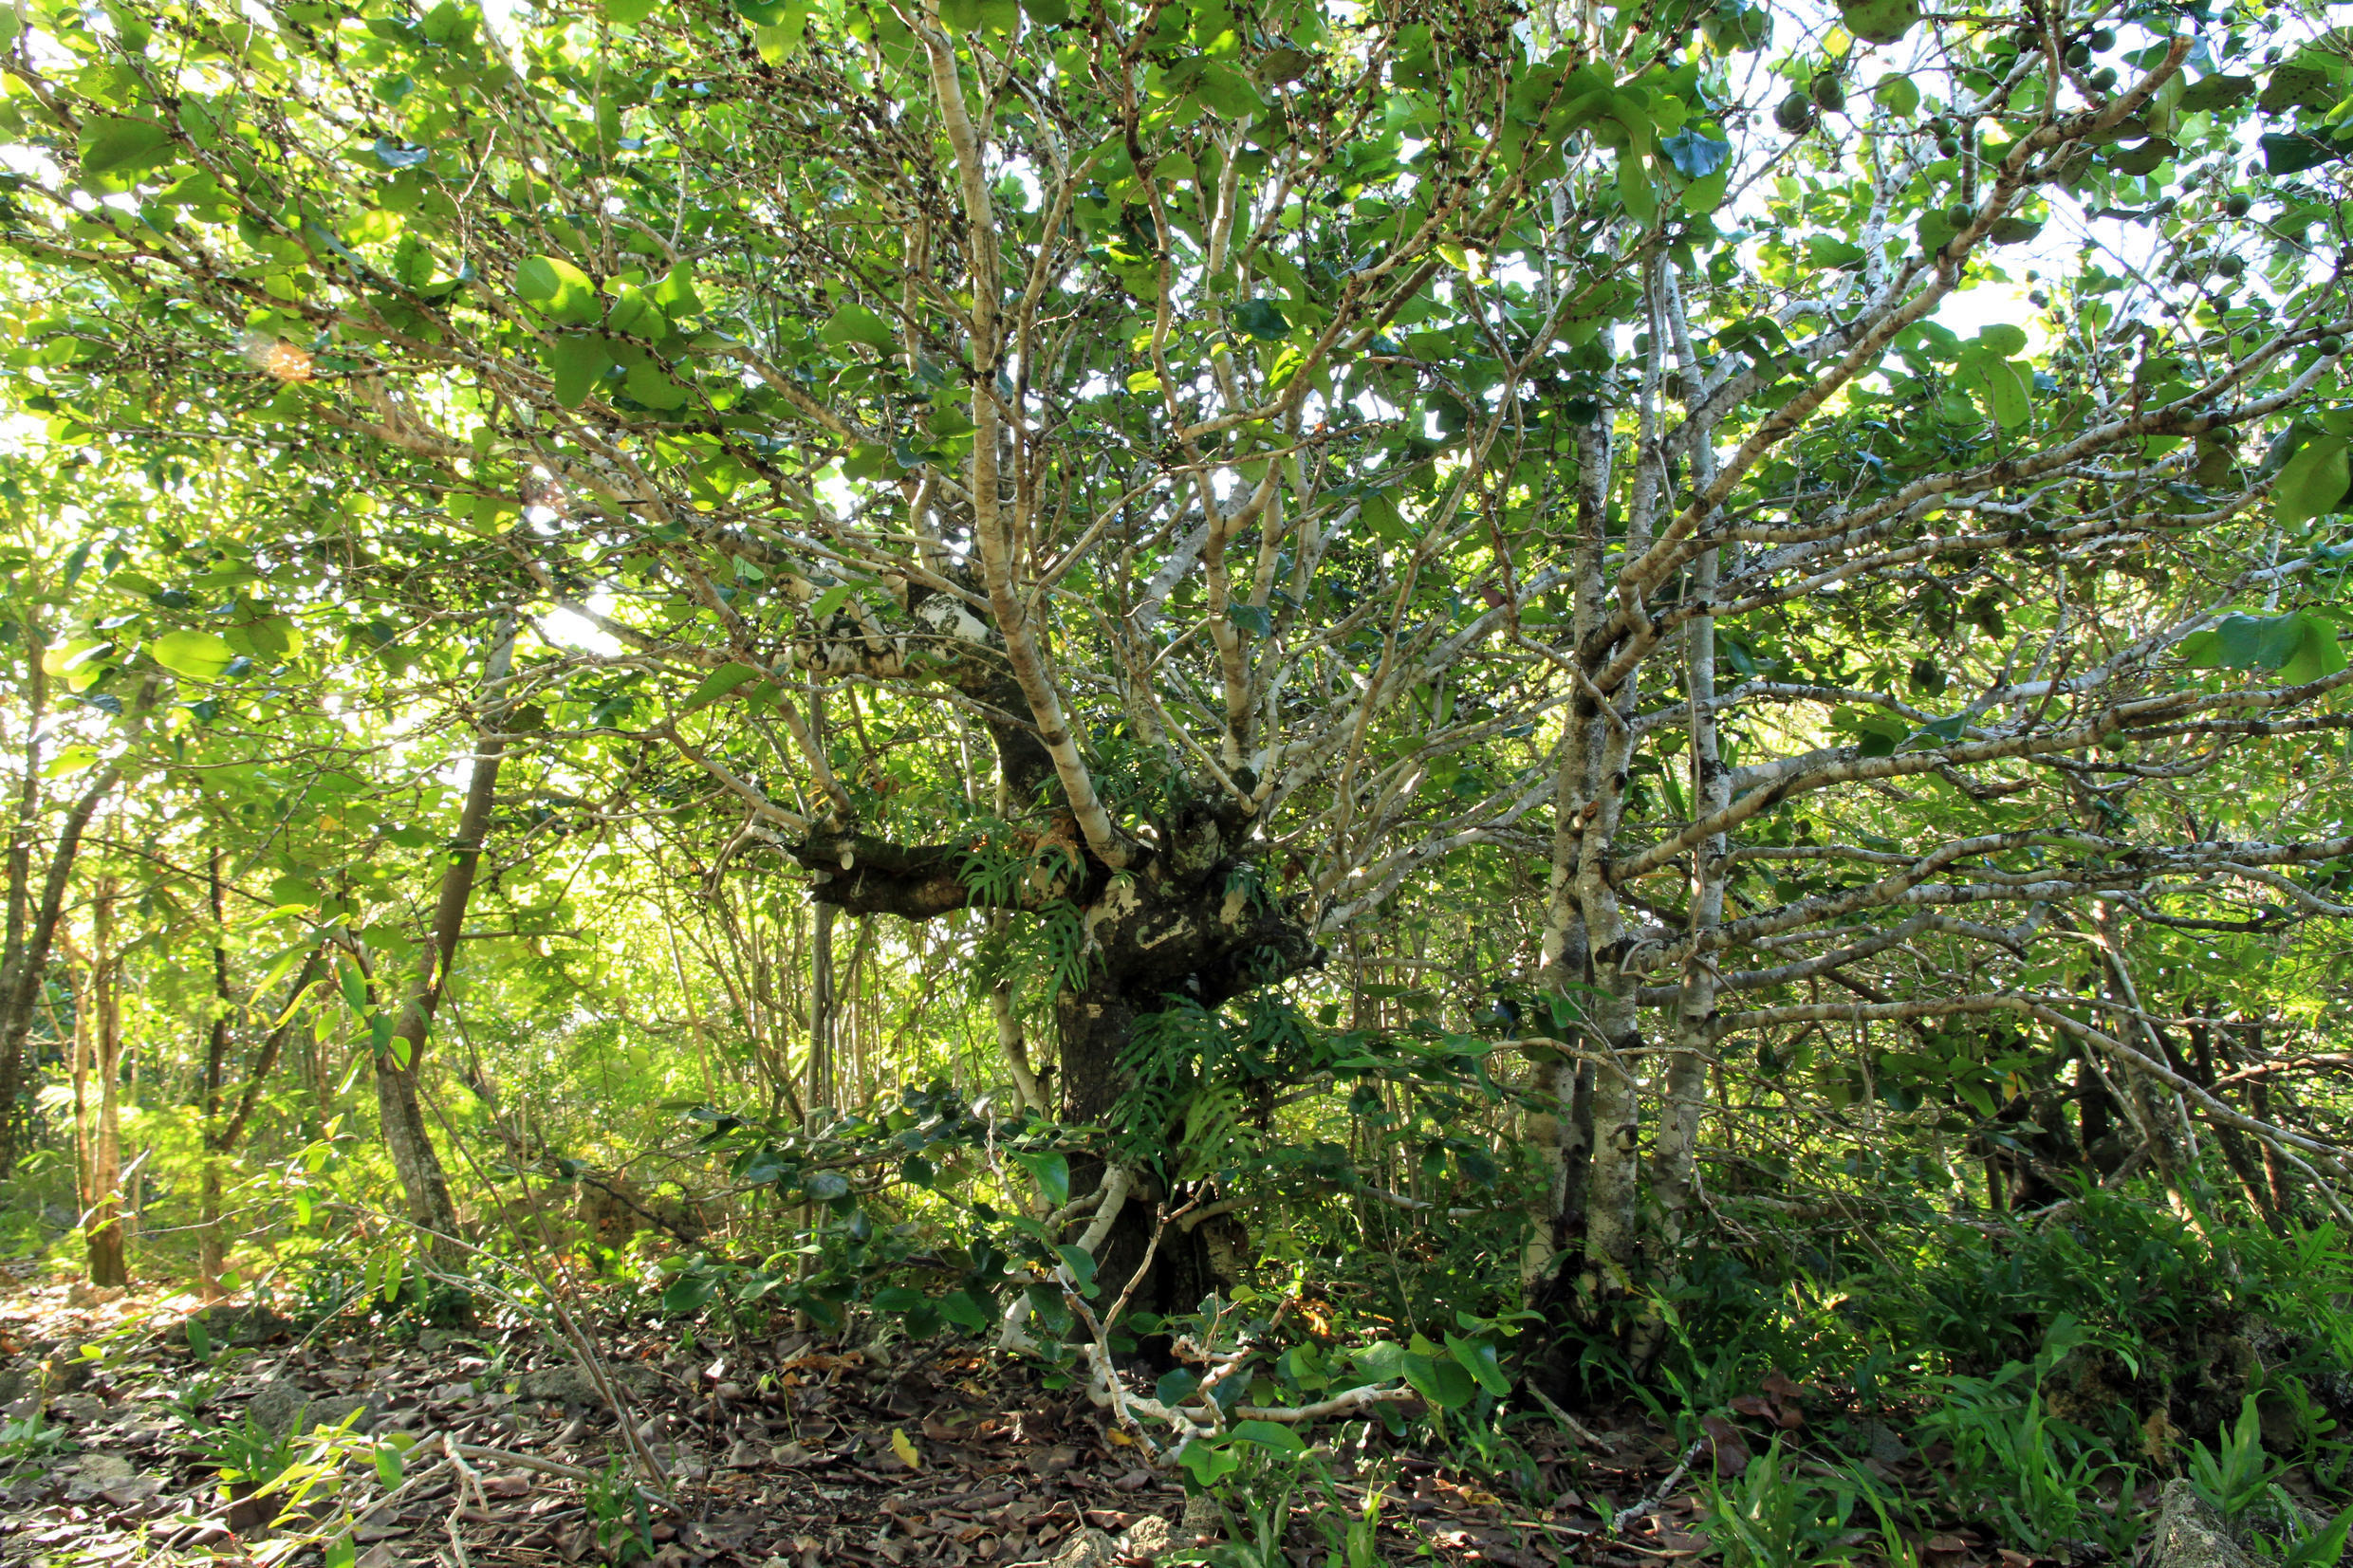 The Ile aux Aigrettes Ebony is one of the 12 Ebony species, unique to Mauritius, which are only found in lowland forests.